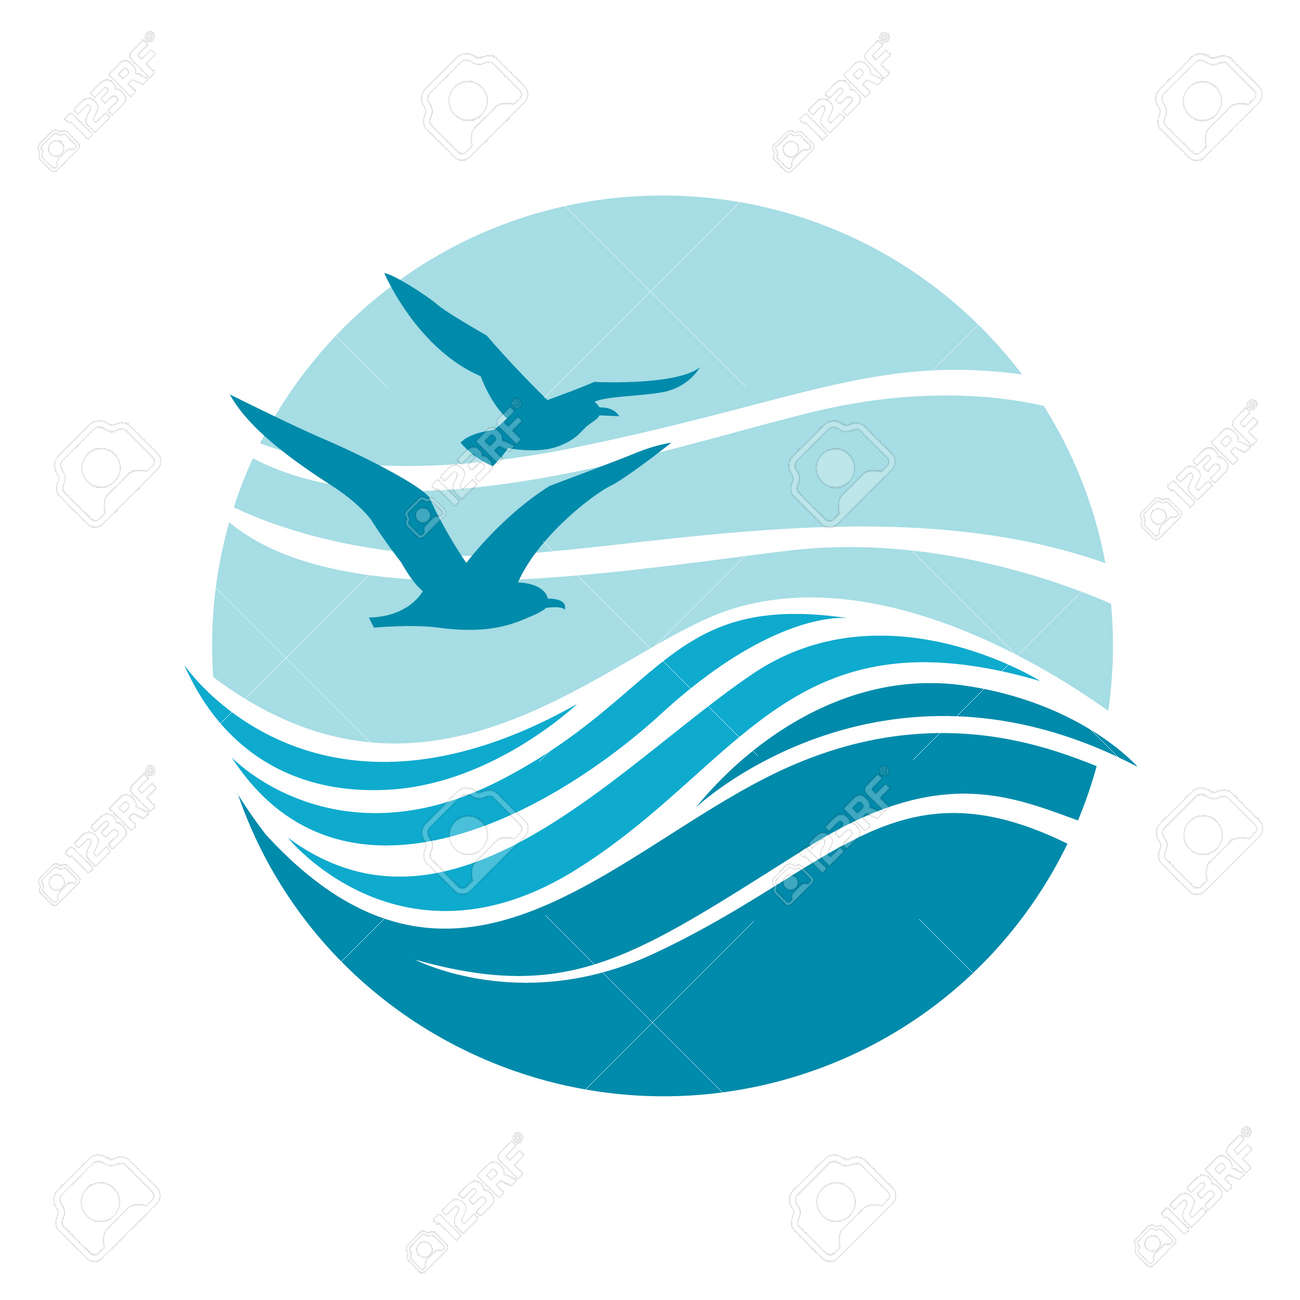 abstract design of ocean logo with waves and seagulls royalty free rh 123rf com